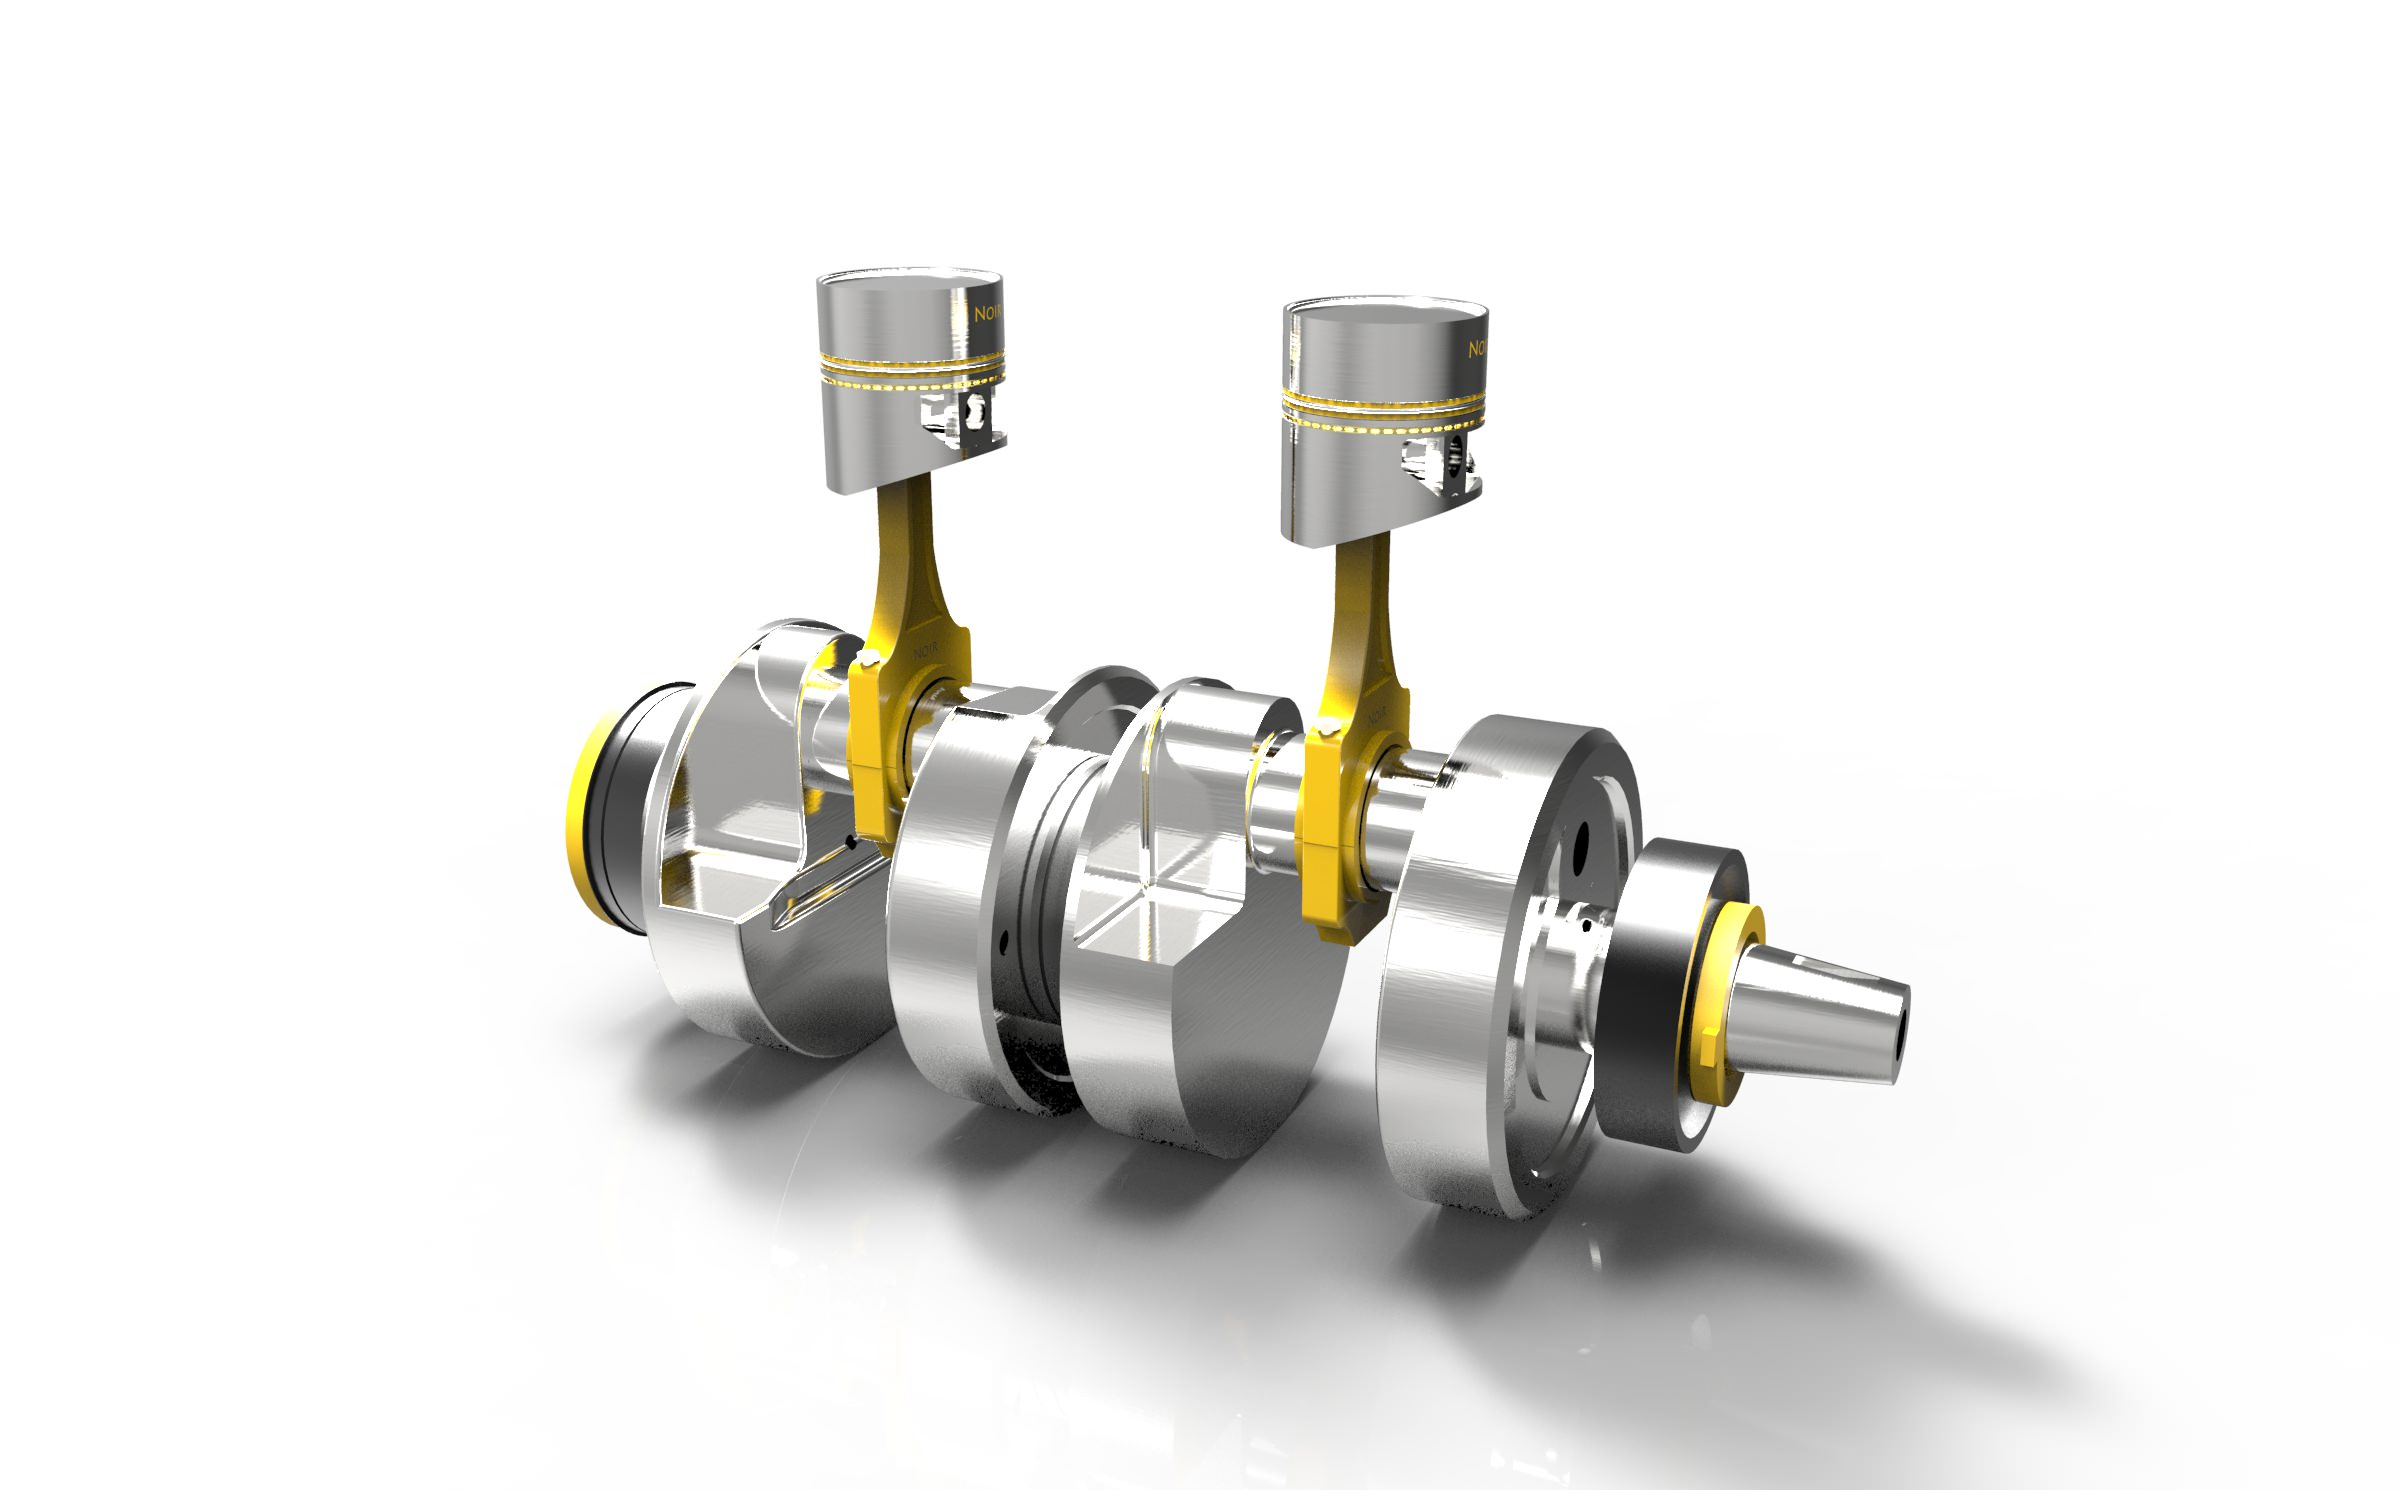 Motorcycle Piston And Crankshaft 3d Model Dwg